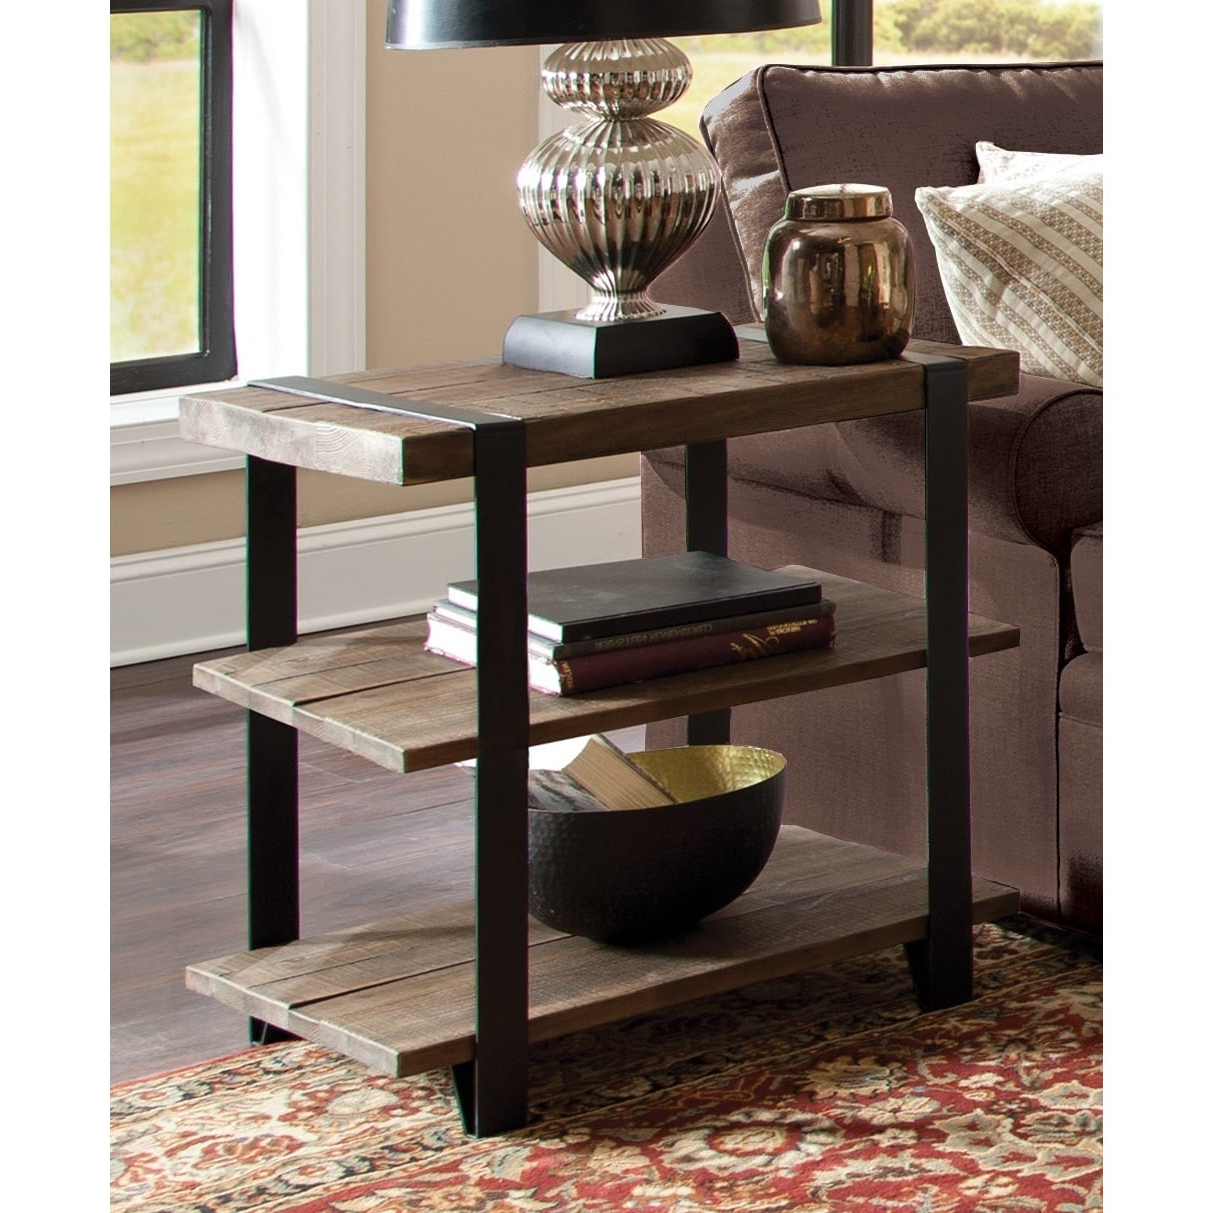 Carbon Loft Kenyon Natural Metal Strap And Reclaimed Wood 2 Tier End Table Regarding Current Carbon Loft Kenyon Natural Rustic Coffee Tables (View 8 of 20)